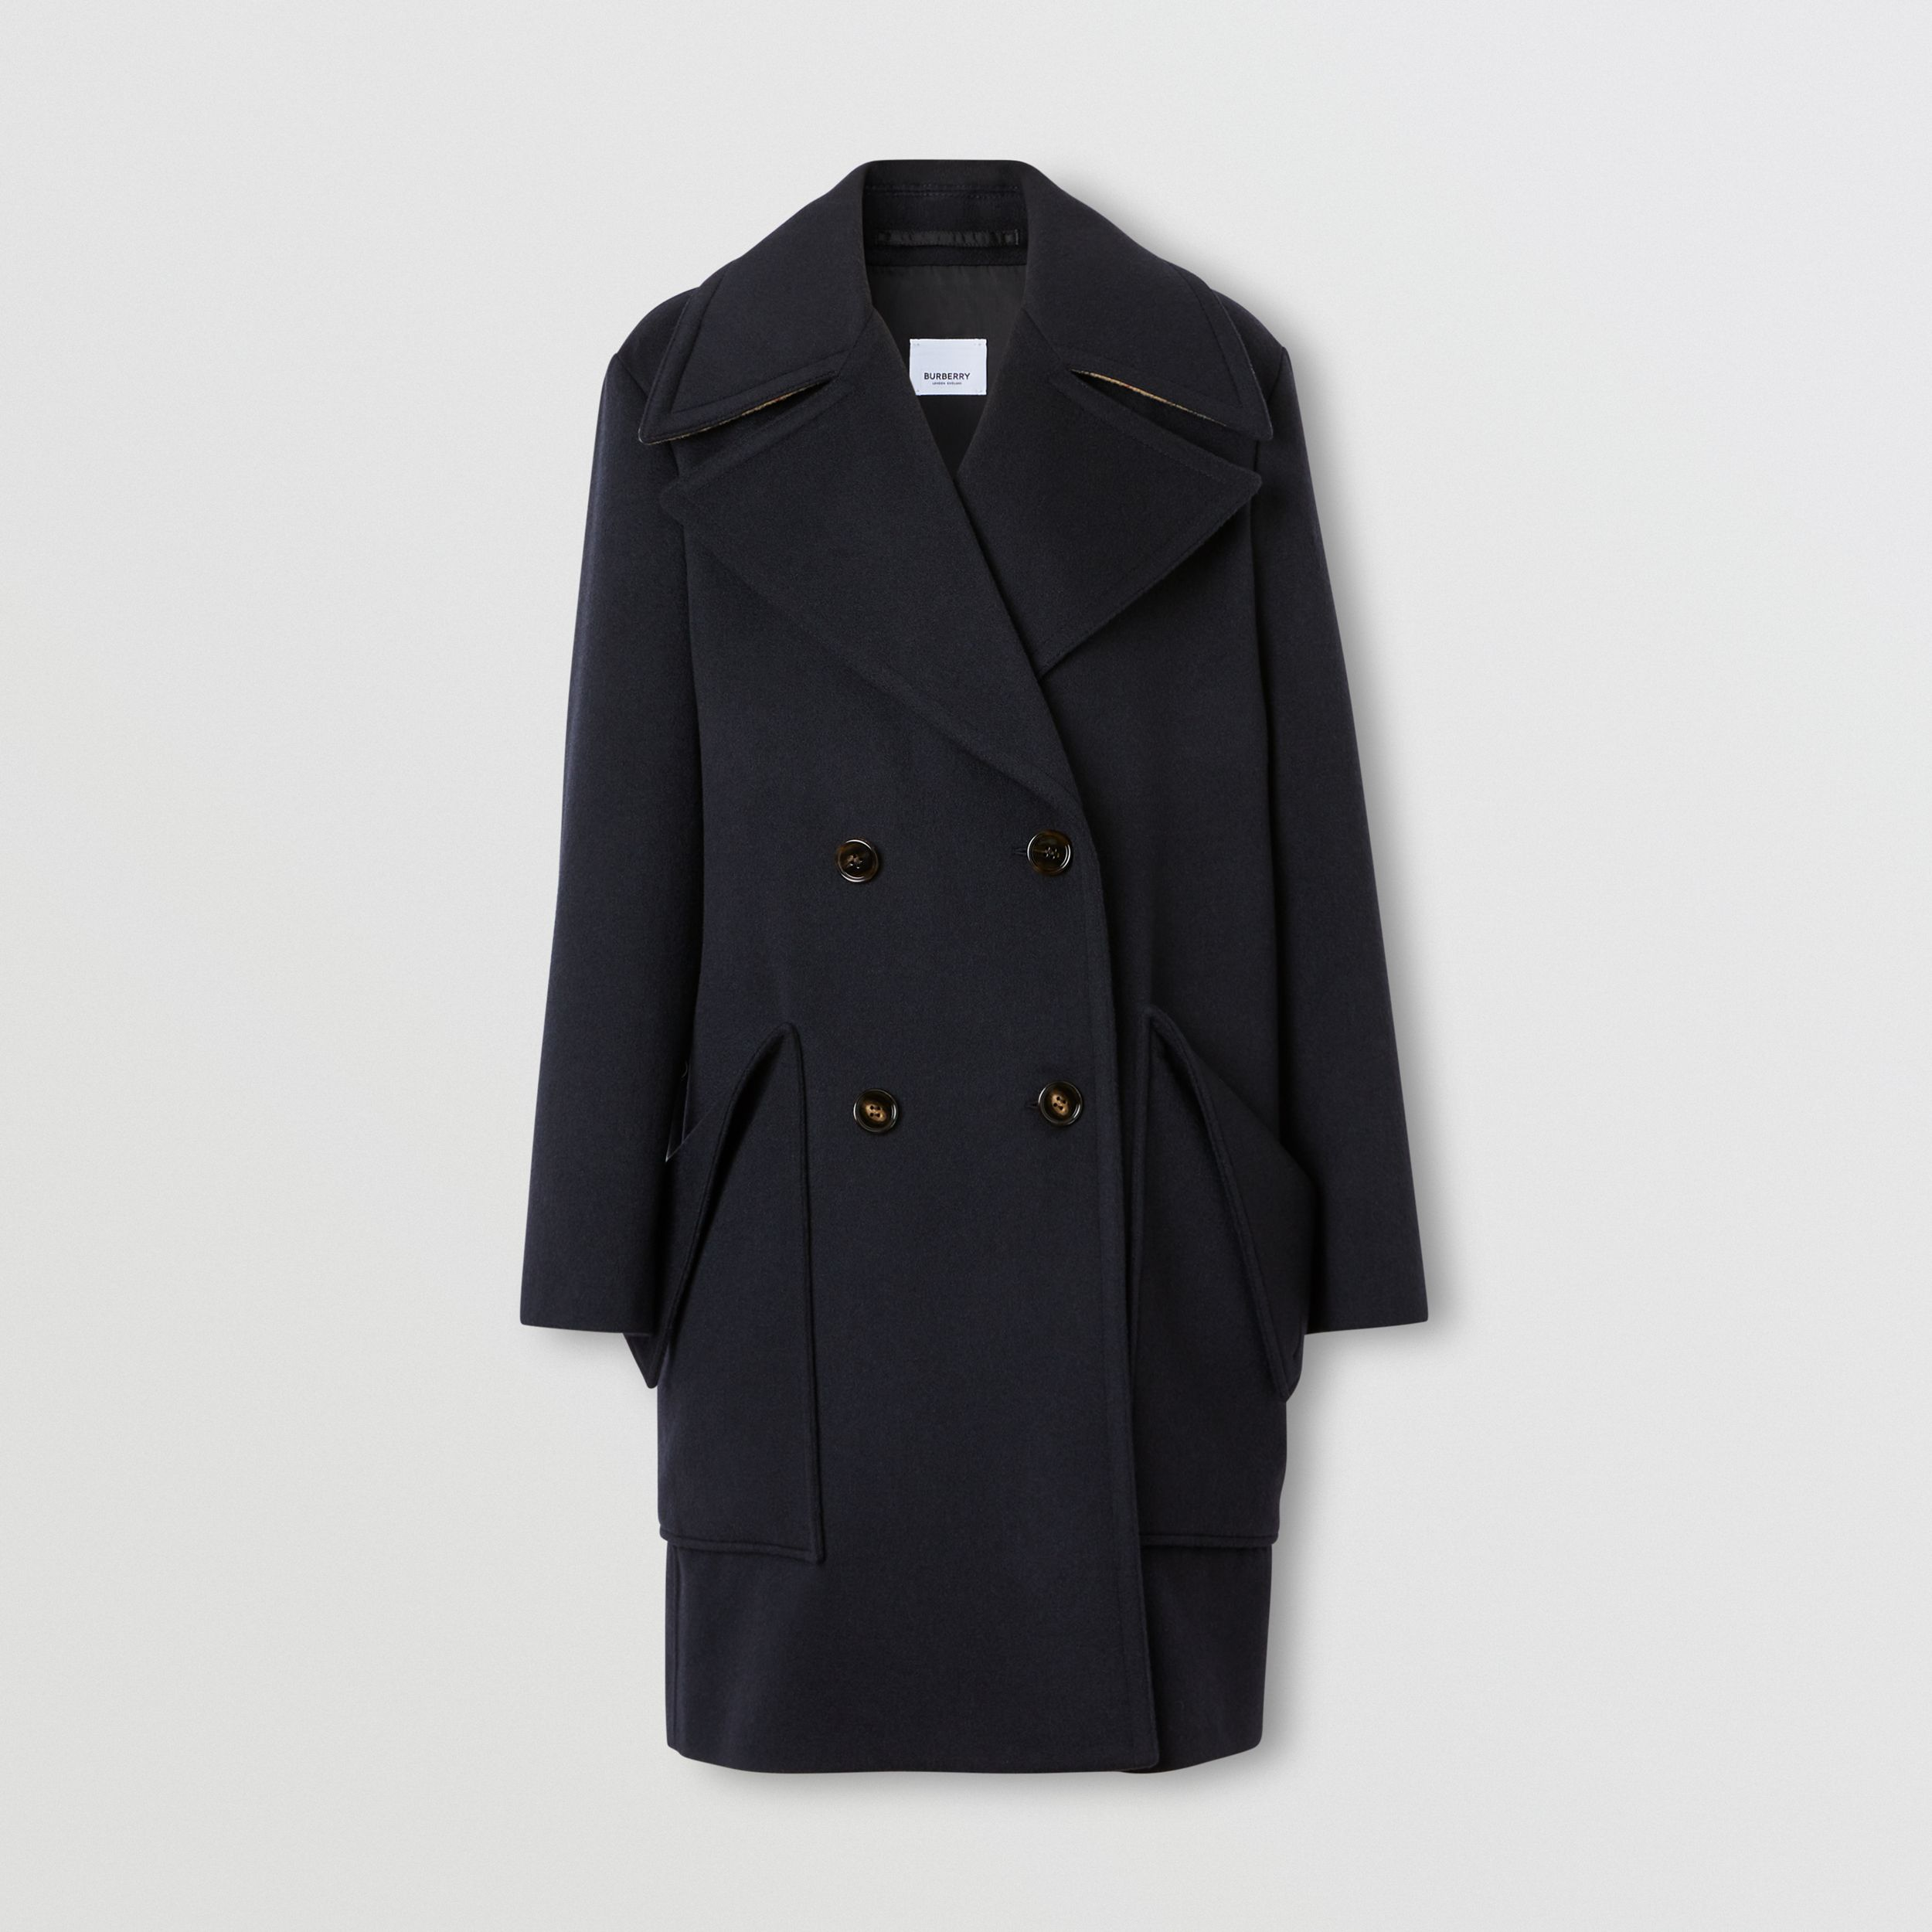 Pocket Detail Cashmere Pea Coat in Navy - Women | Burberry - 4